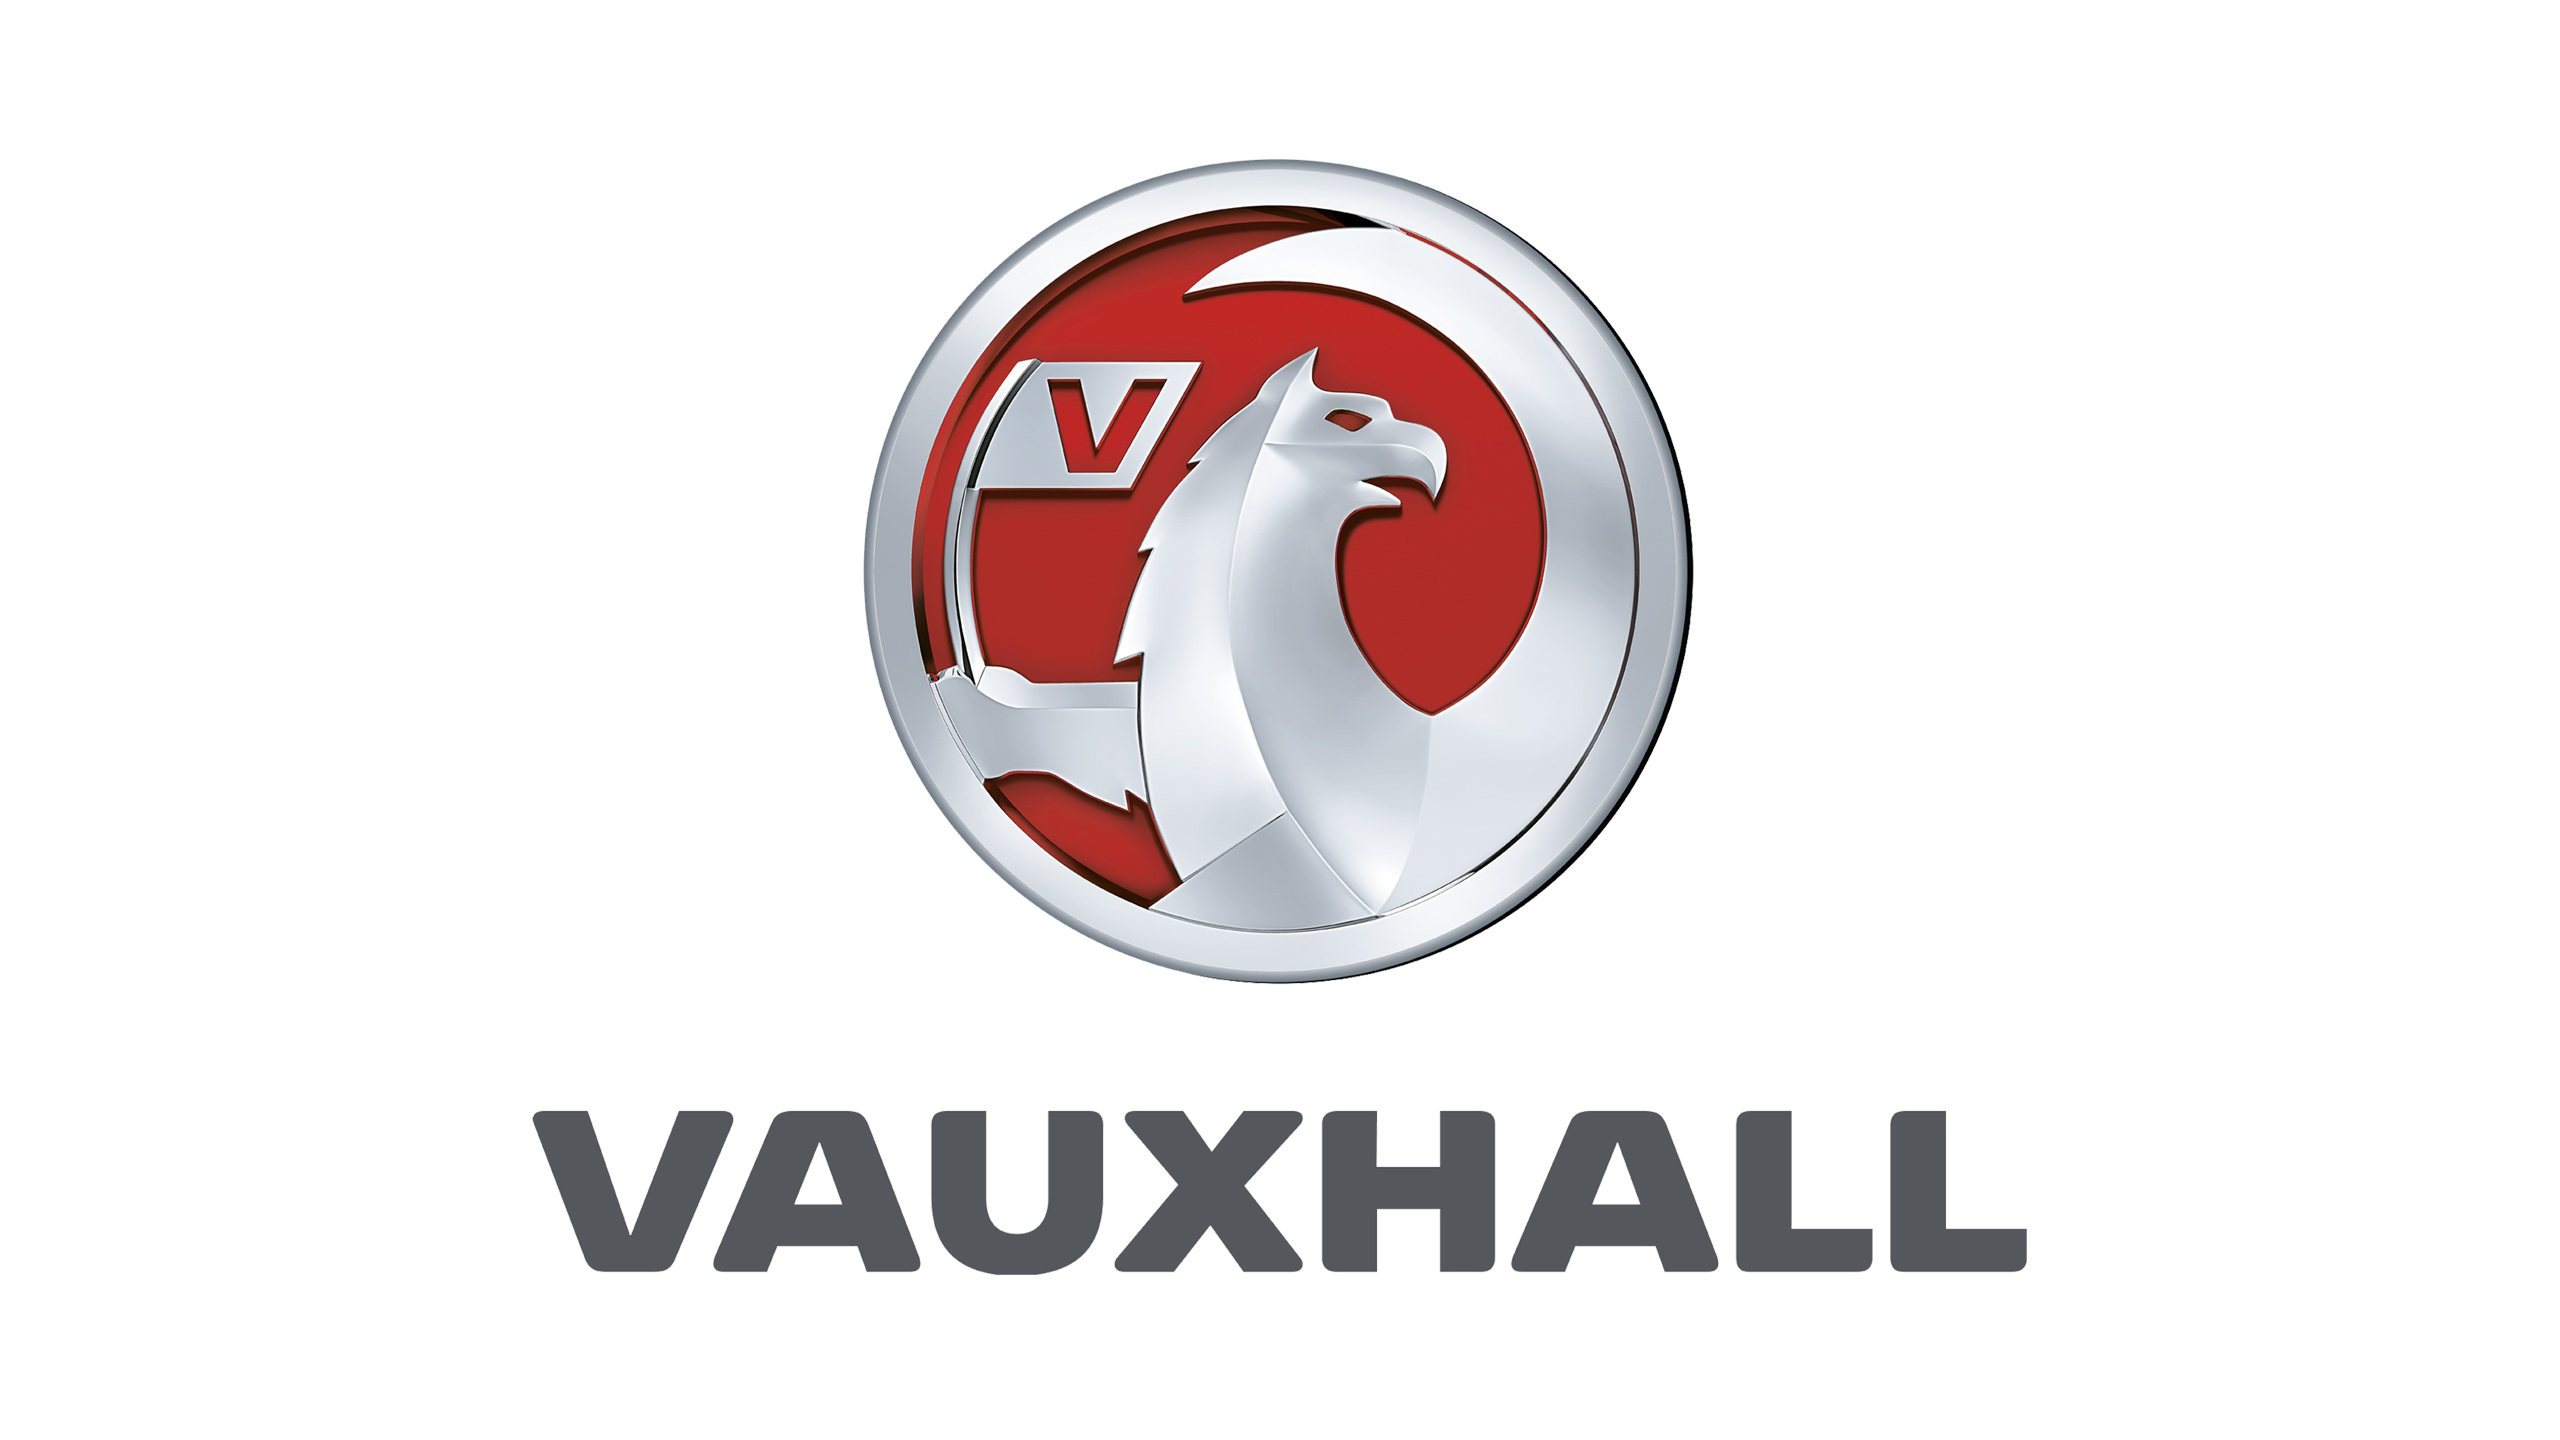 Vauxhall Logo Hd Png Meaning Information Carlogos